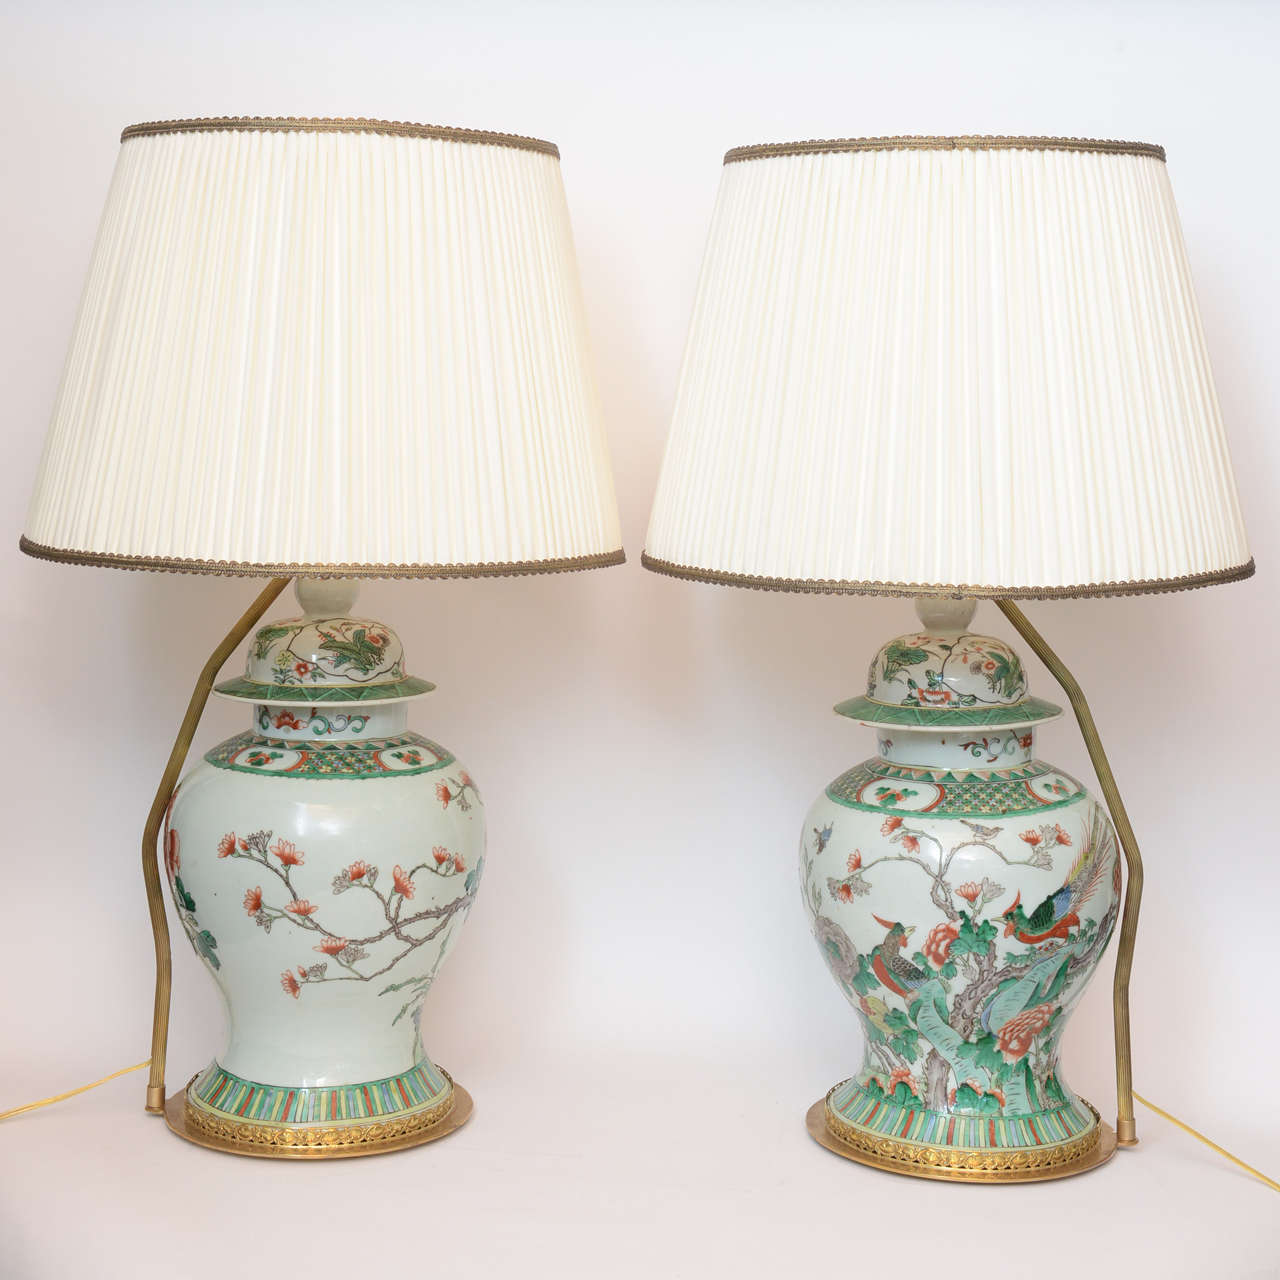 Pair Of 19th Century Chinese Ginger Jar Lamps With Painted Birds And Flowers For At 1stdibs